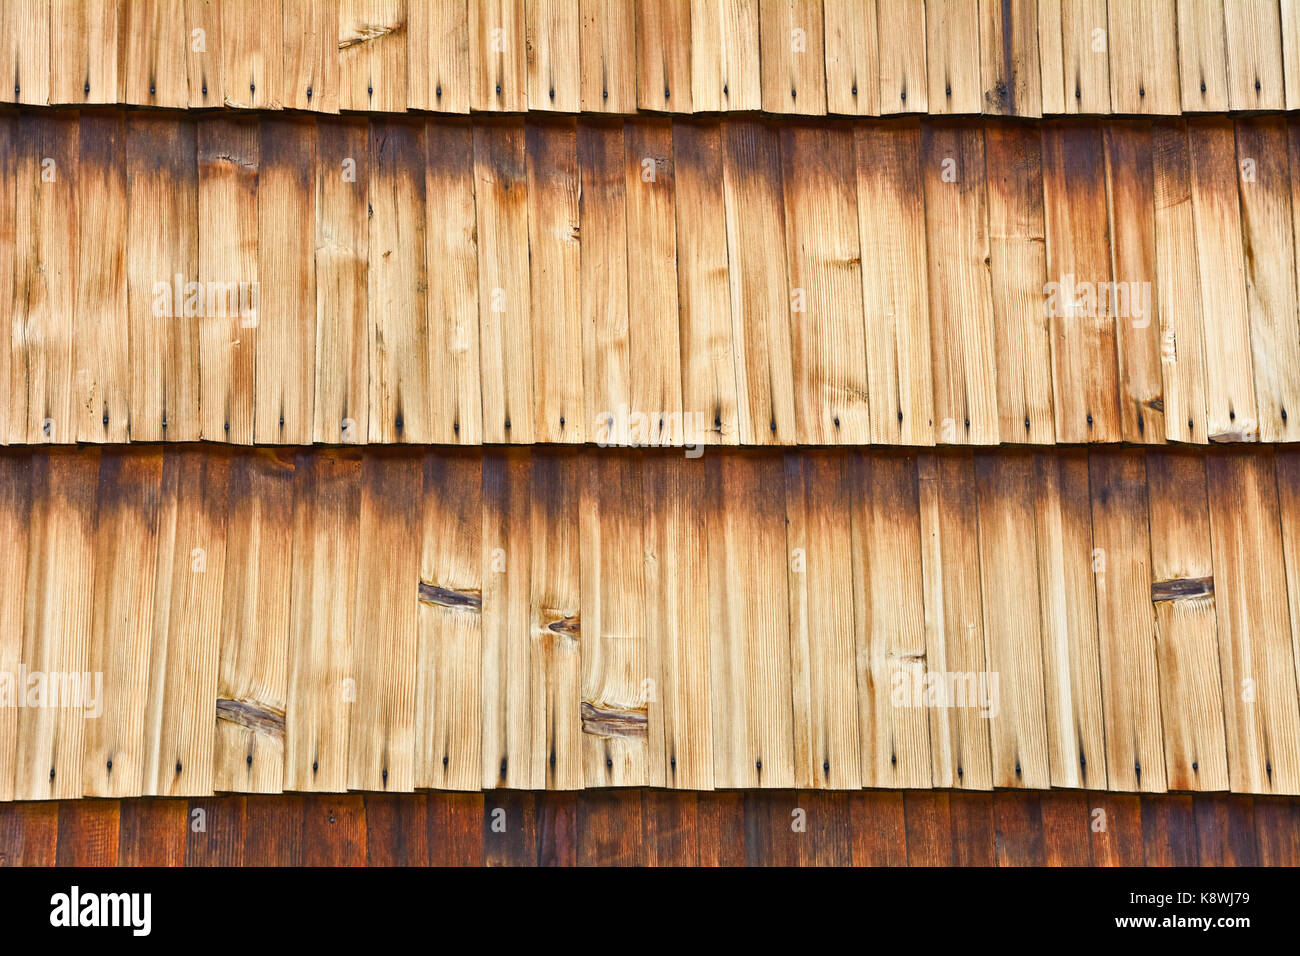 old wood shingle roof texture stockfotos old wood shingle roof texture bilder alamy. Black Bedroom Furniture Sets. Home Design Ideas